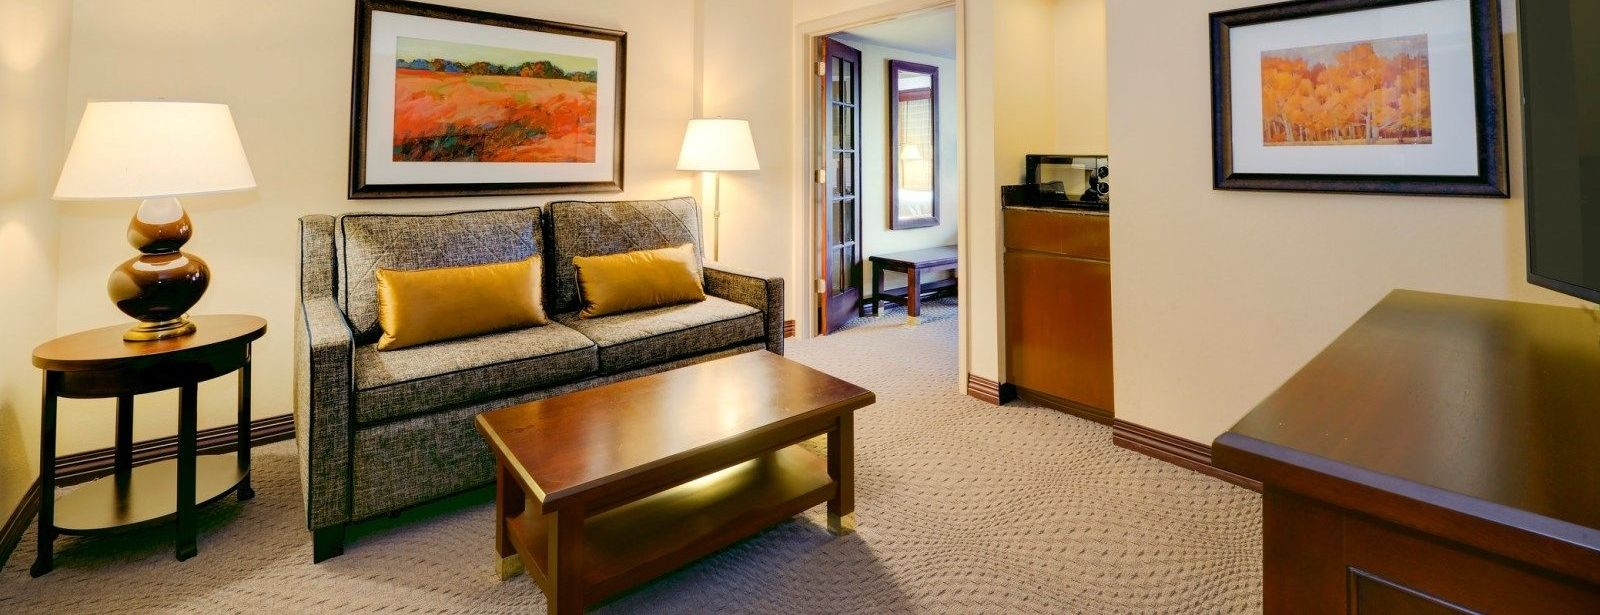 Traditional King Suite | Sheraton Atlanta Perimeter North Hotel